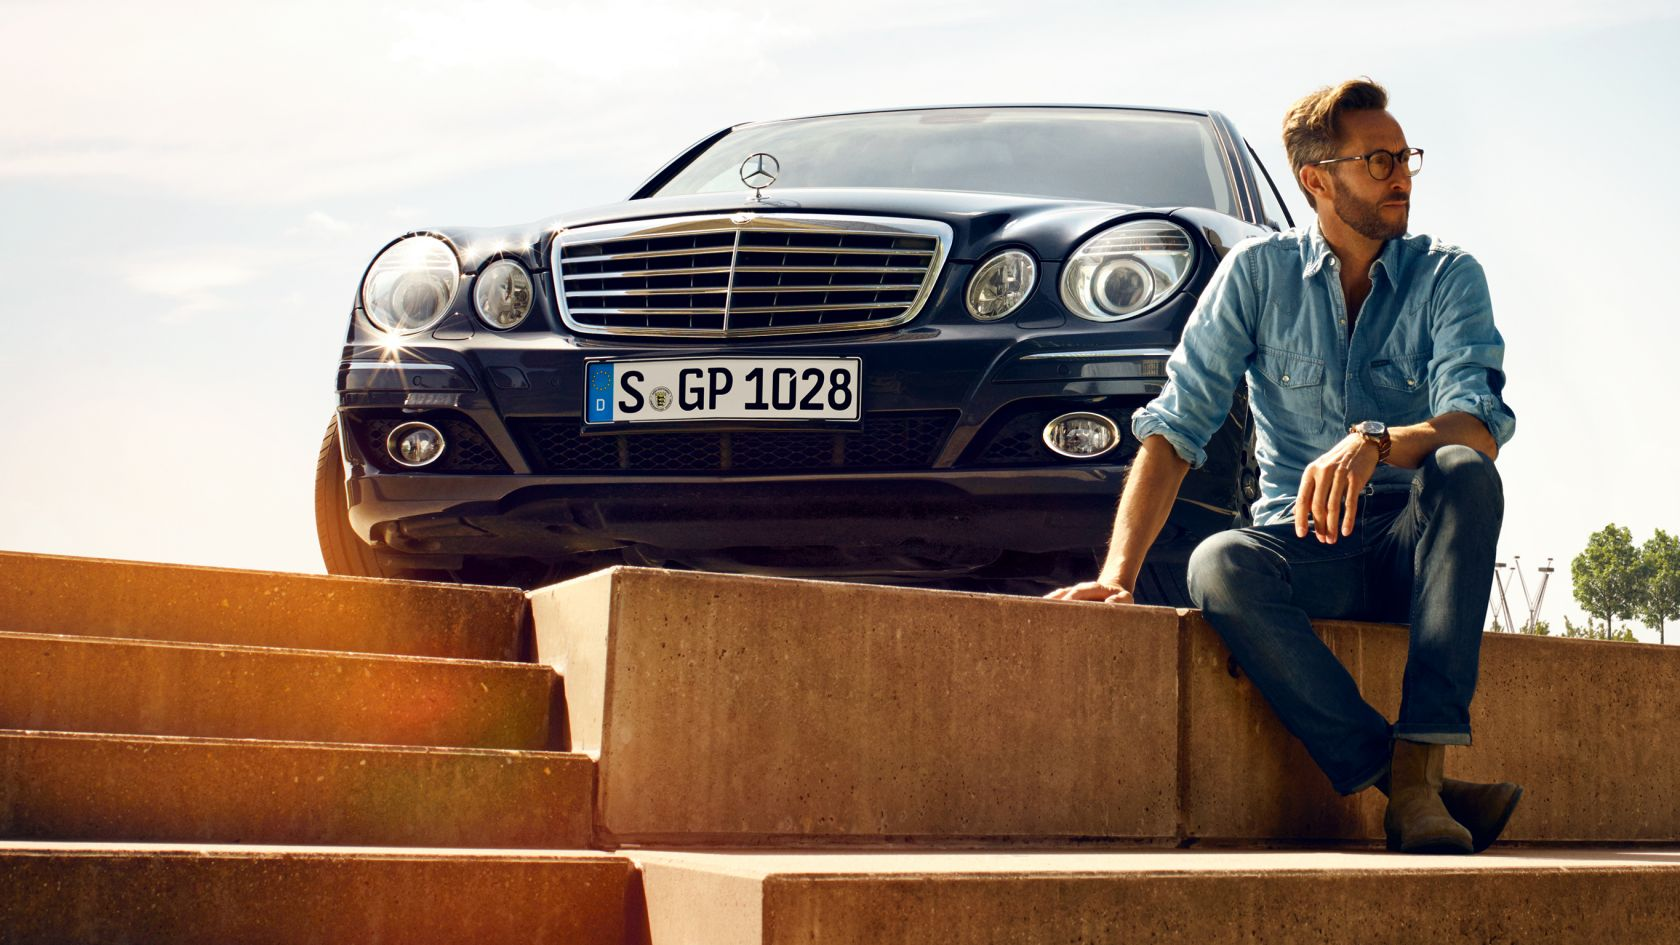 Repairs and warranties - for your Mercedes-Benz